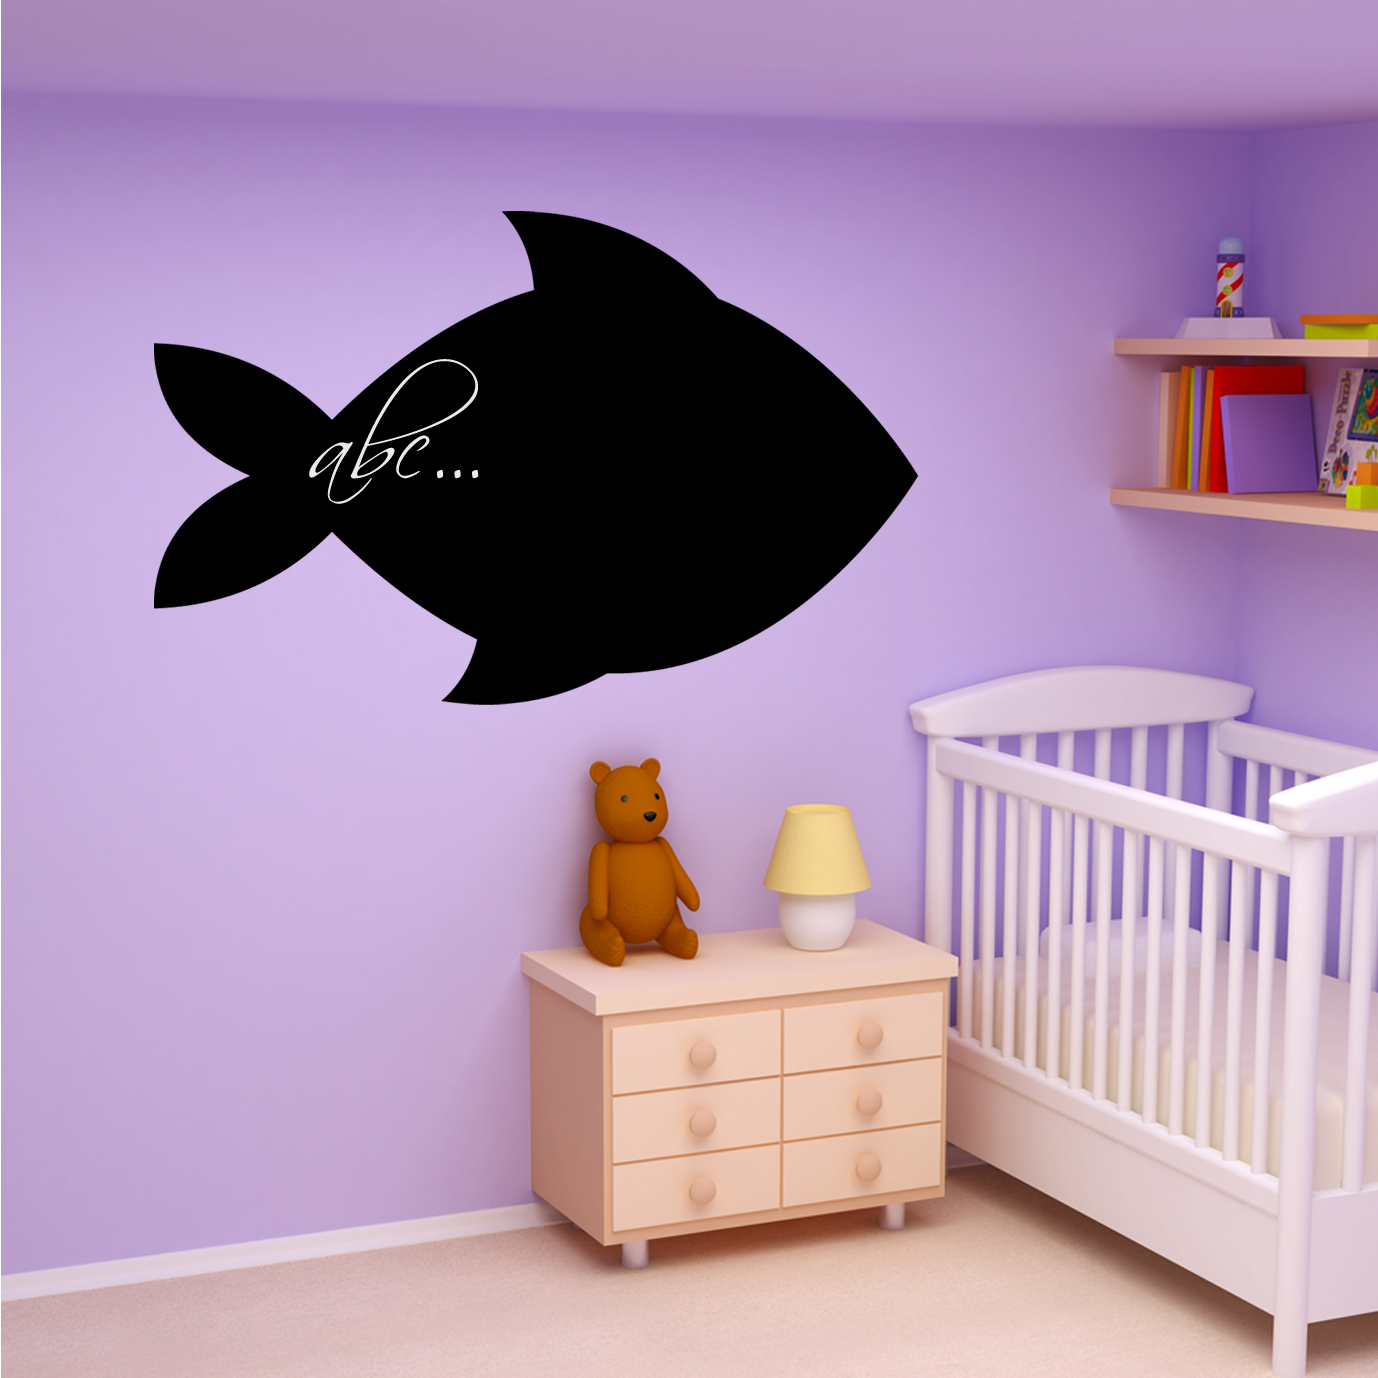 wallstickers folies fish chalkboard blackboard wall diy 3d vis muurstickers art decal pvc fishes home decor